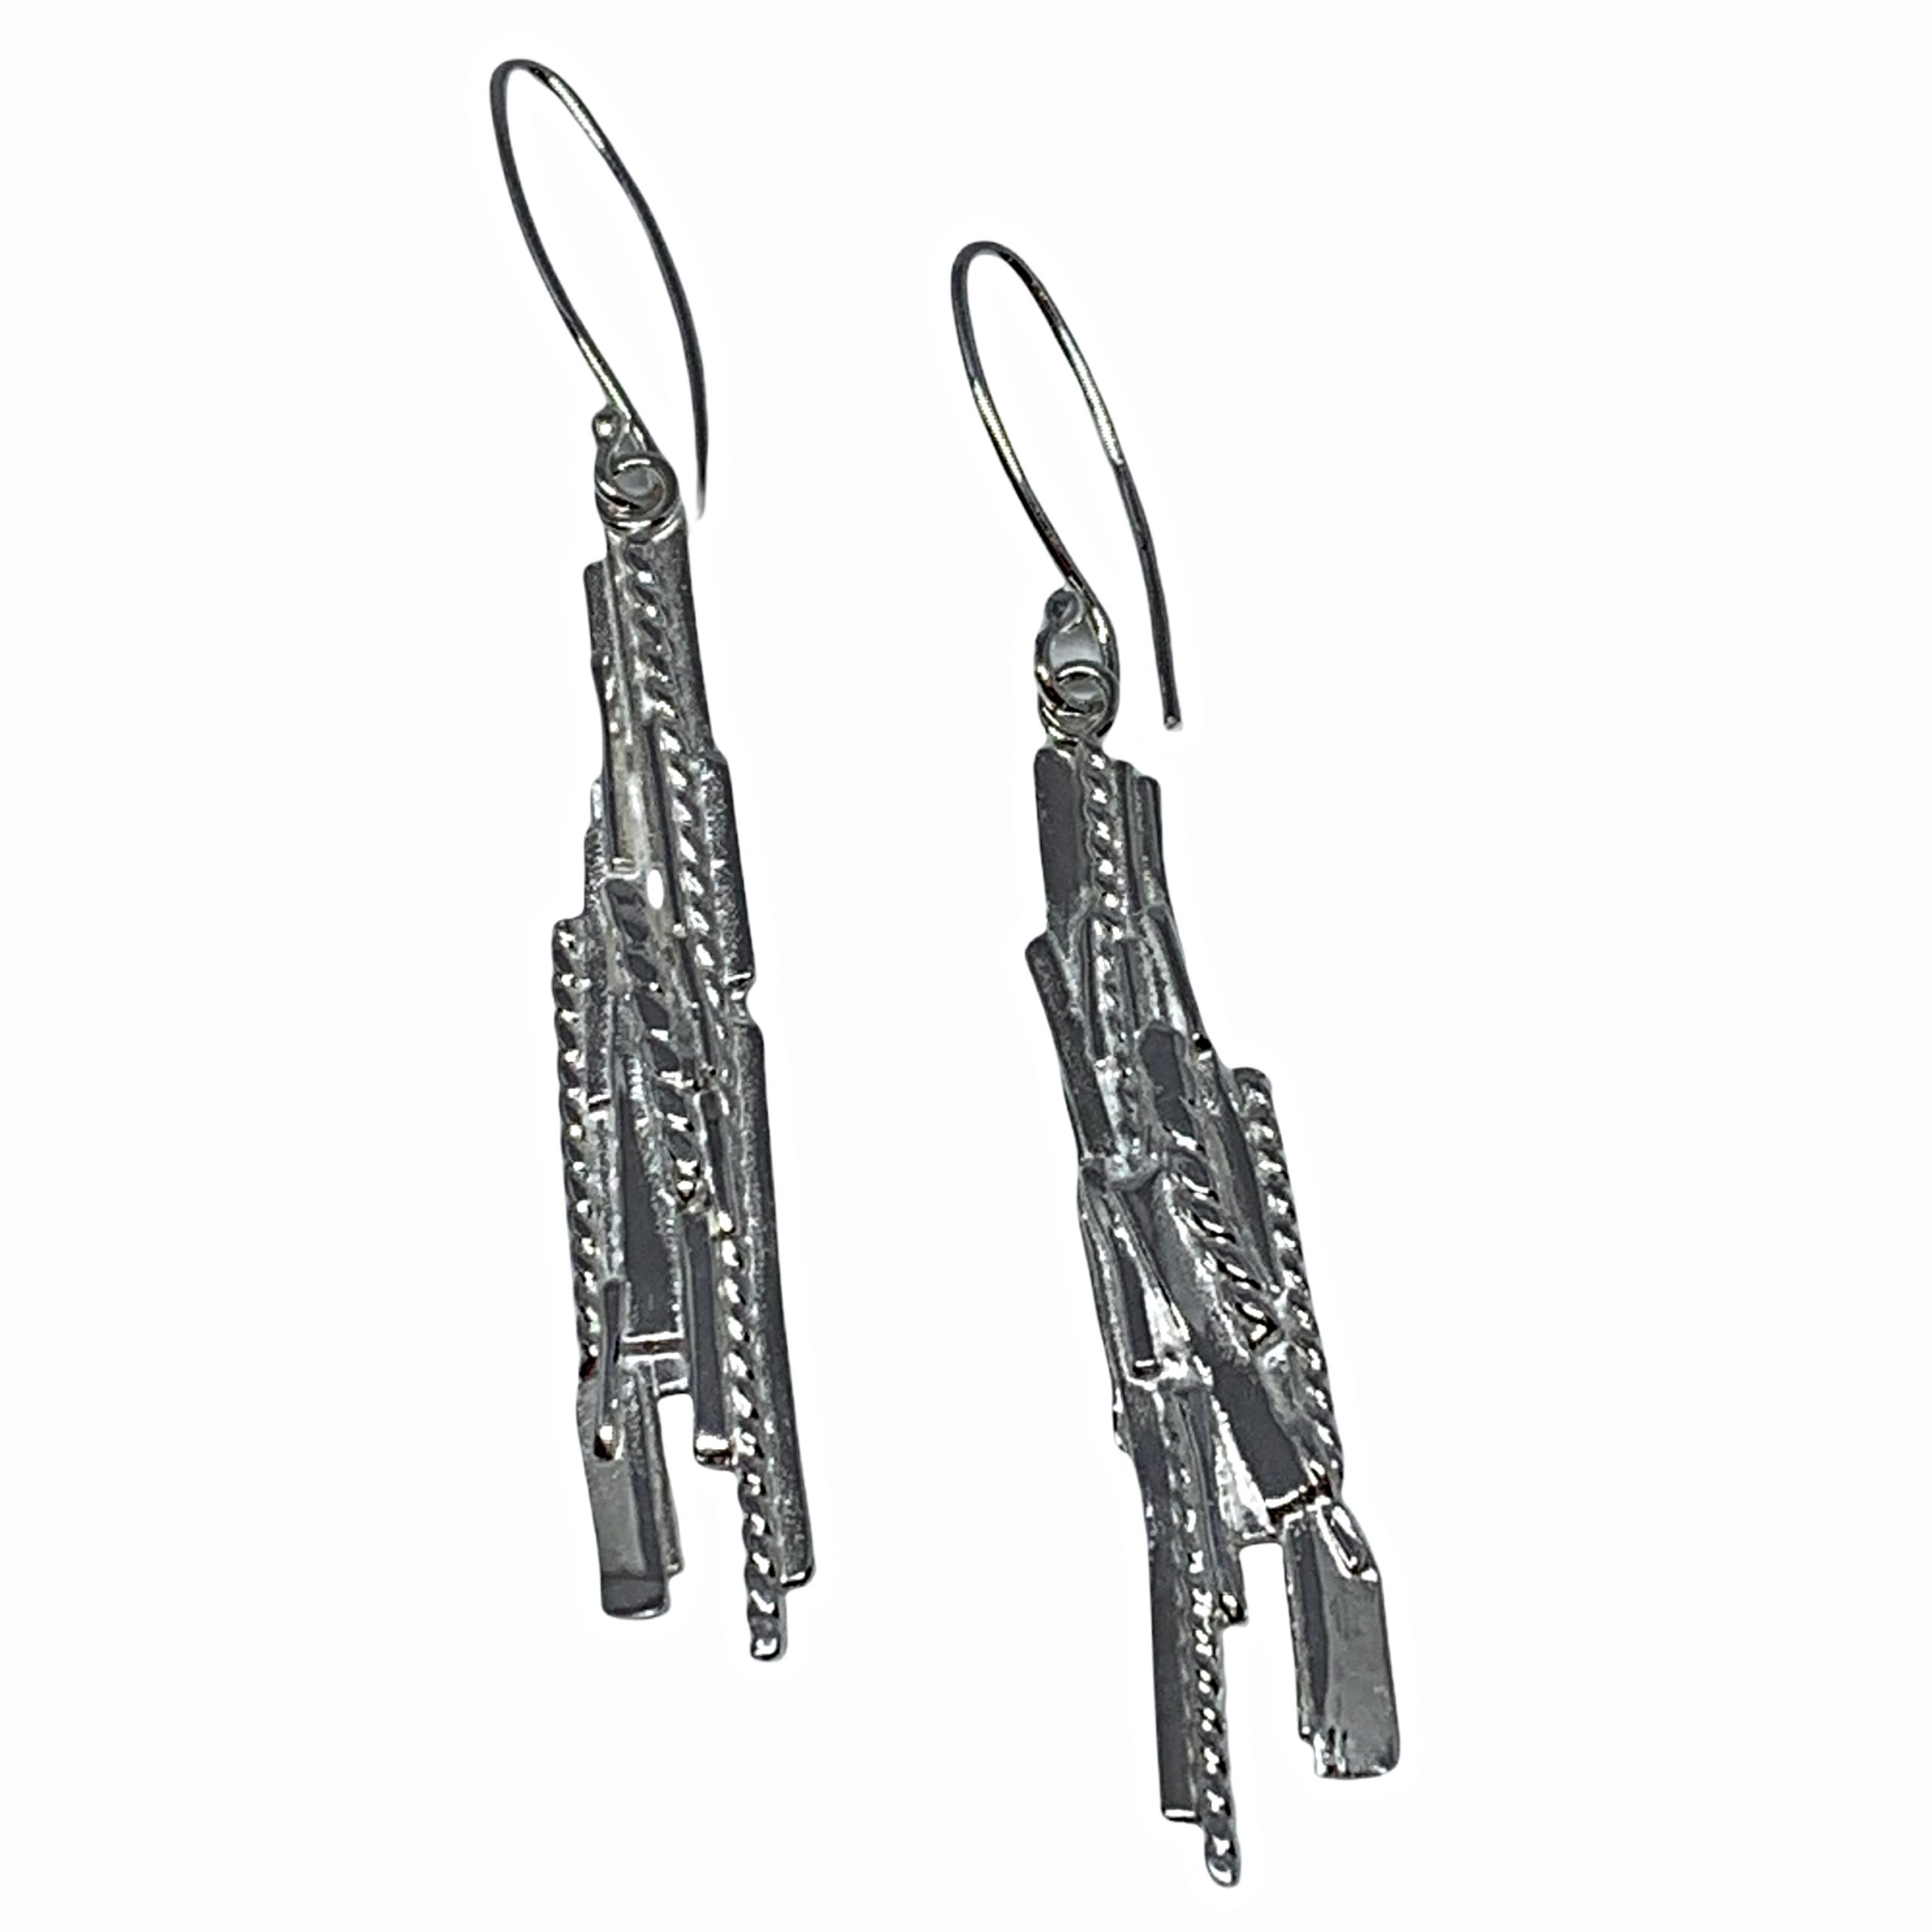 Handmade sterling silver earrings by A&R Jewellery | Effusion Art Gallery + Cast Glass Studio, Invermere BC